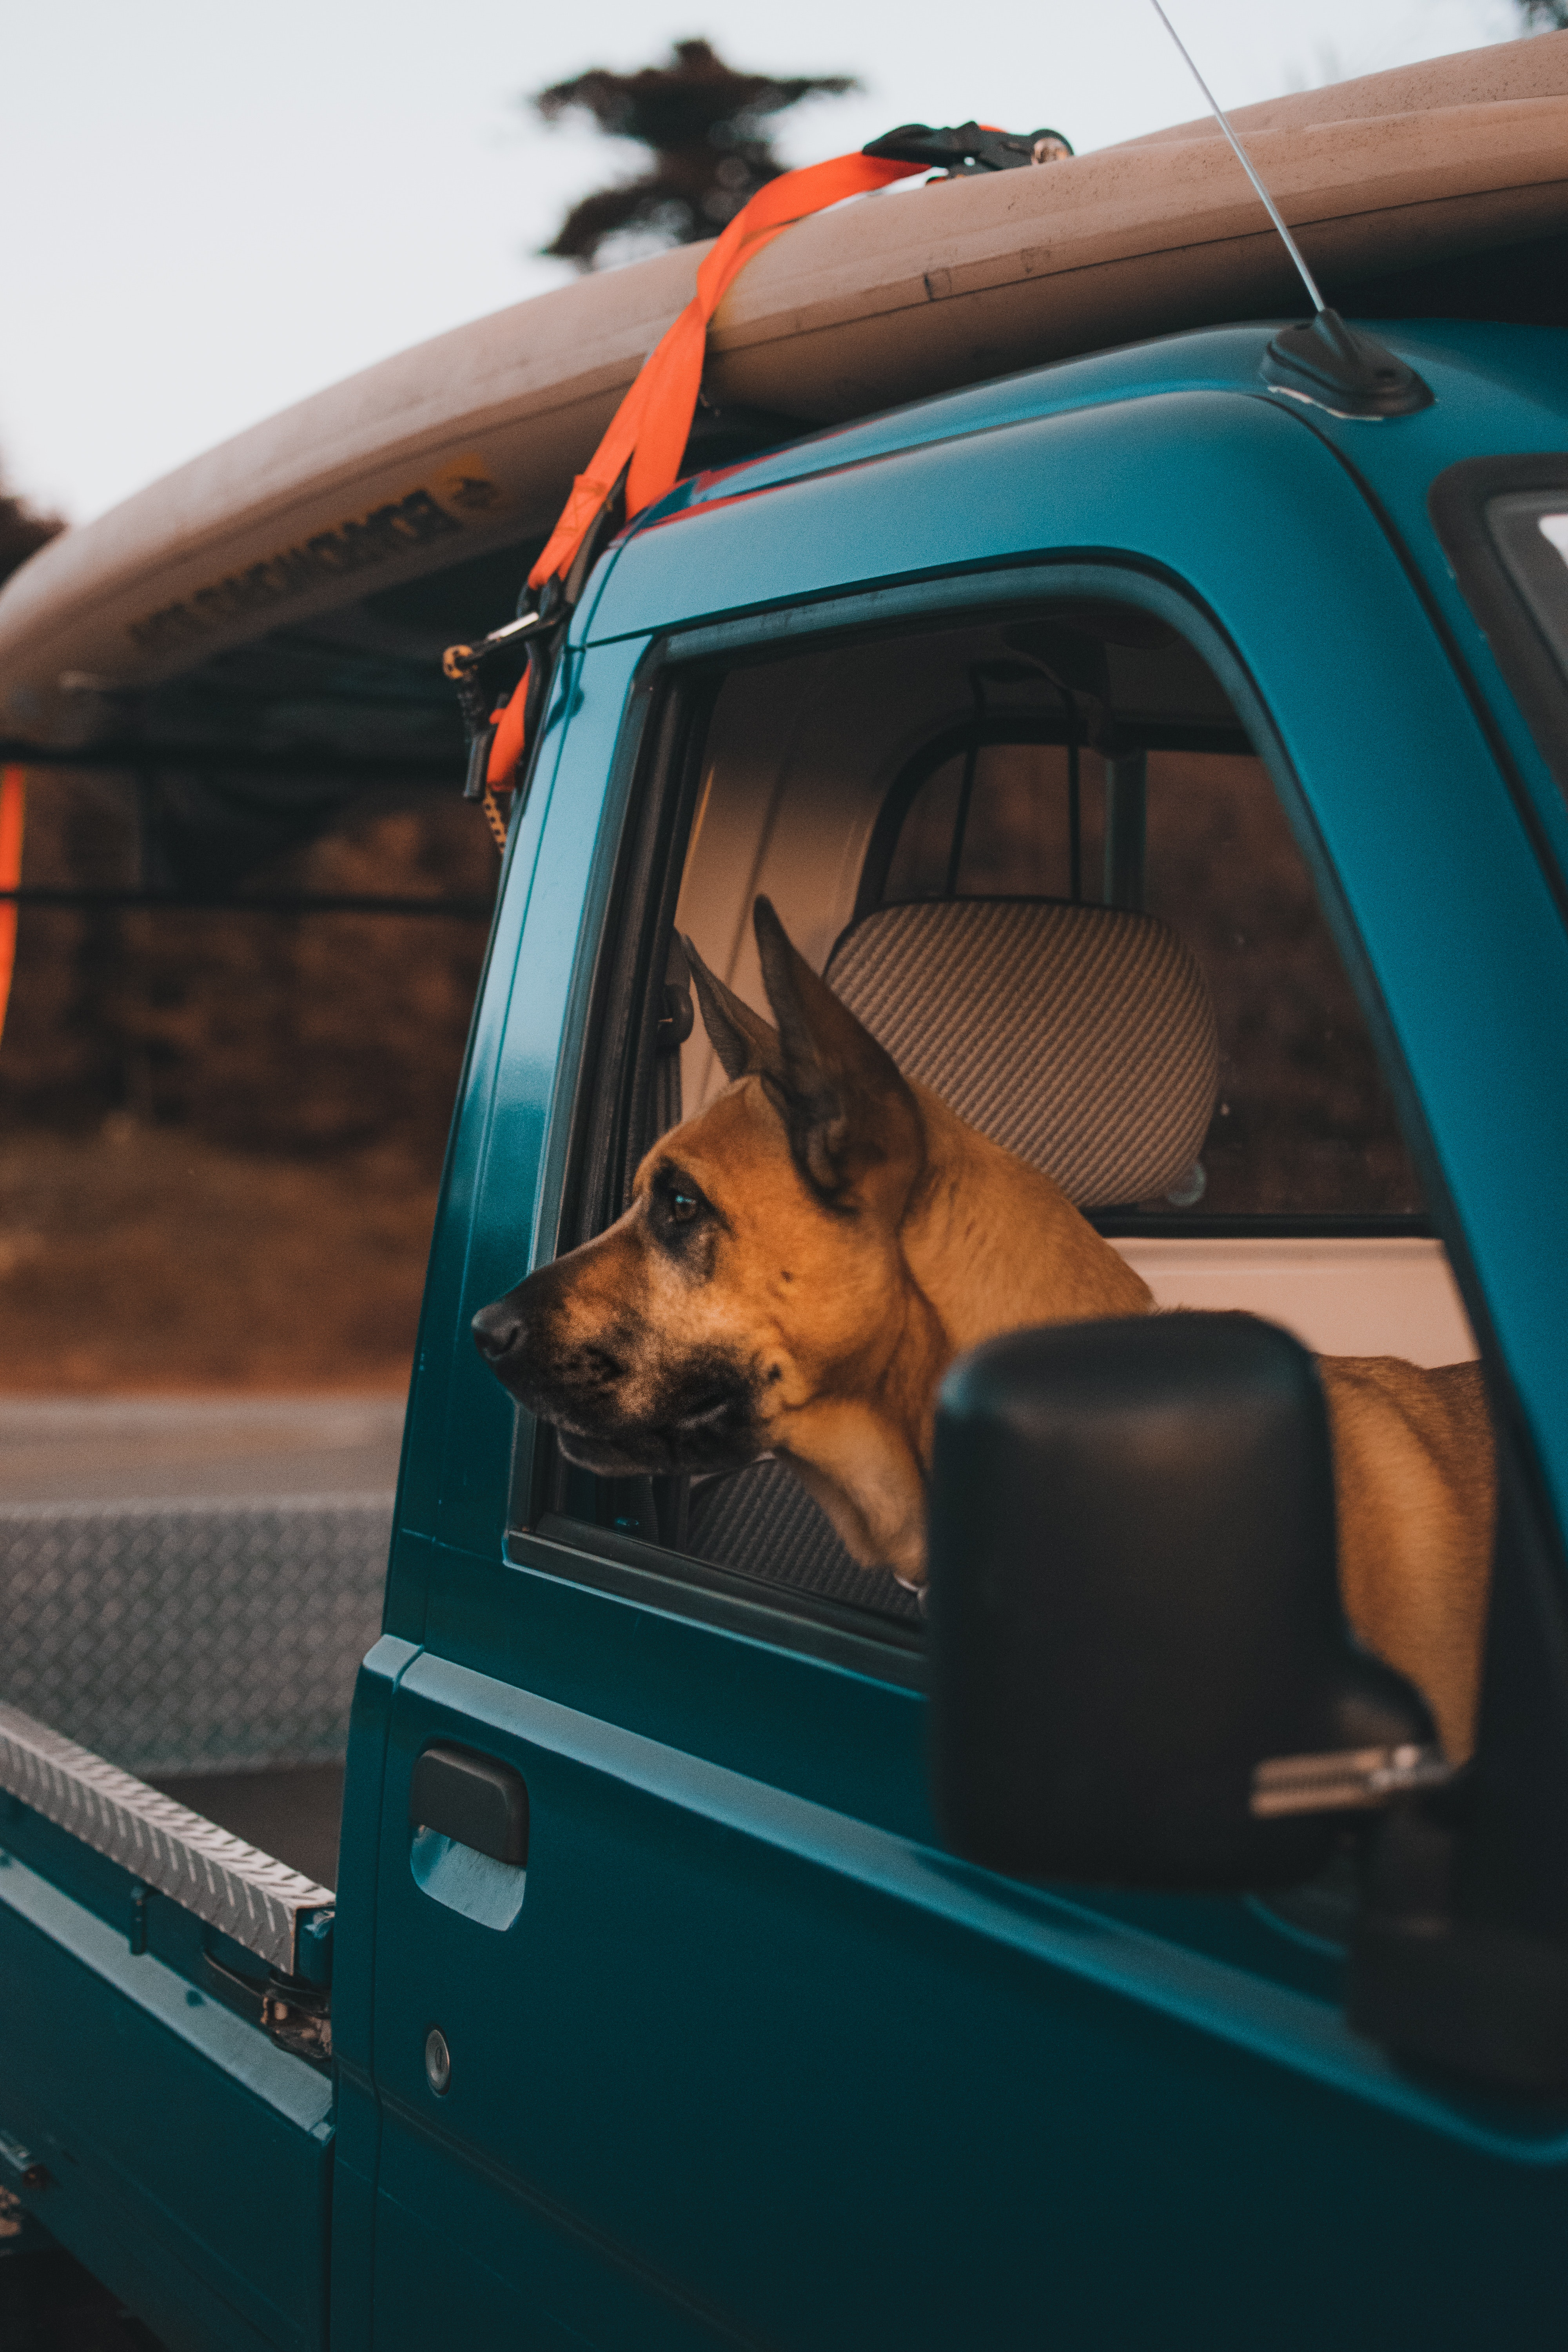 Dog sticking head out of truck cabin